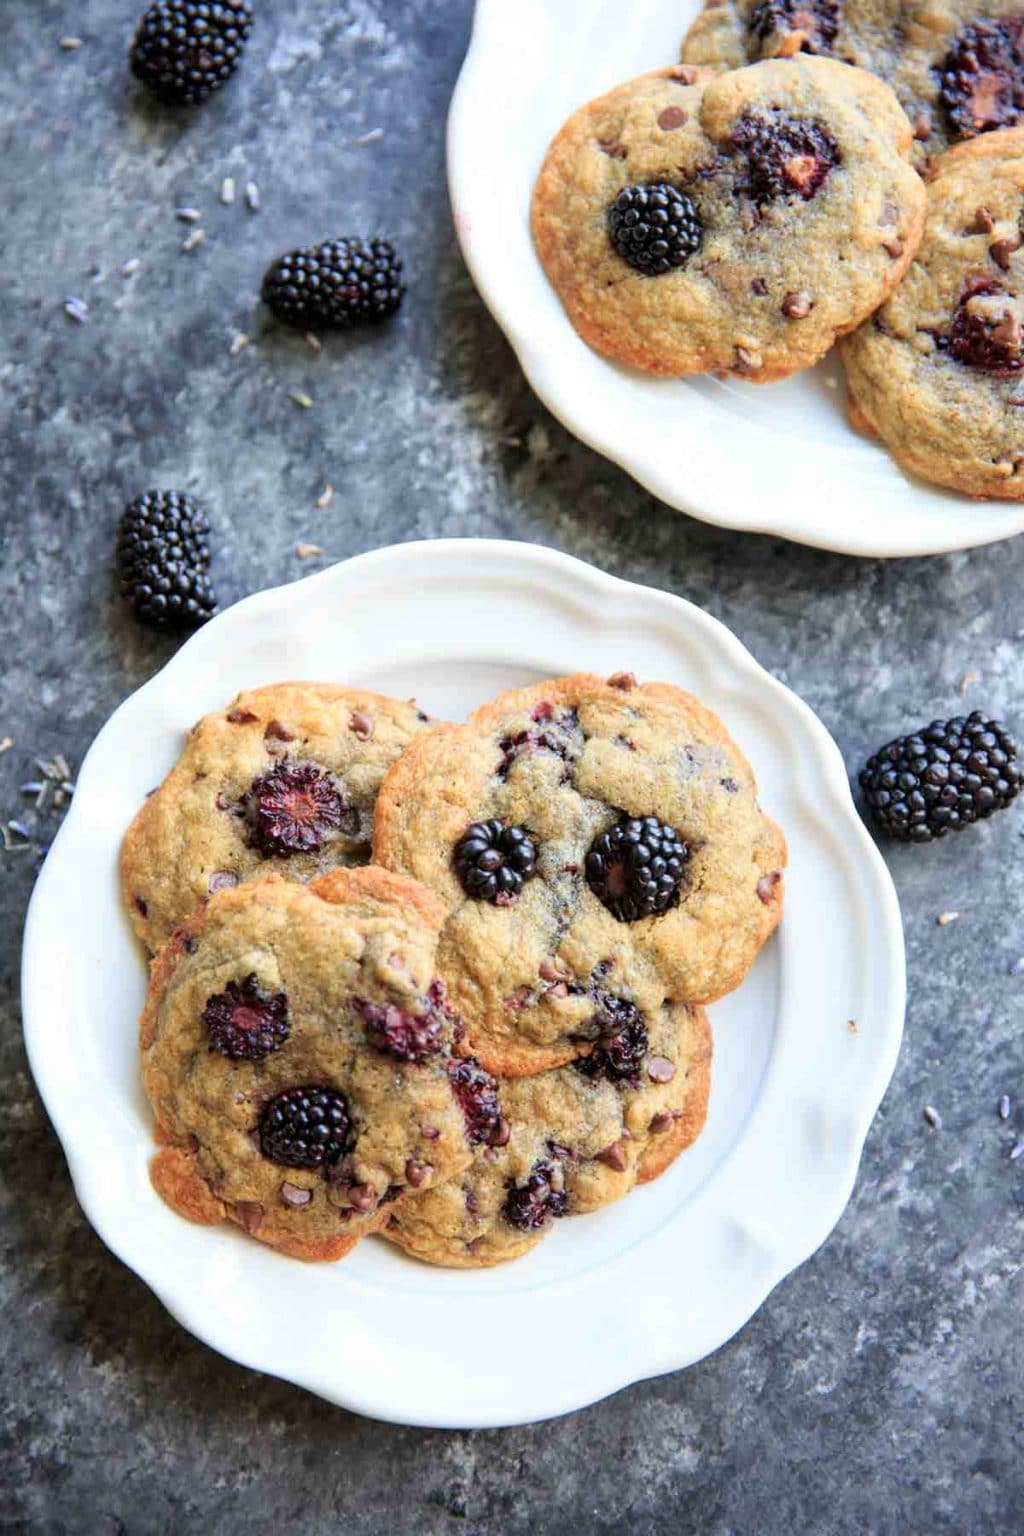 Blackberry Lavender Chocolate Chip Cookies - a unique twist on the classic with some fruit and dried lavender. Perfect dessert in summertime!